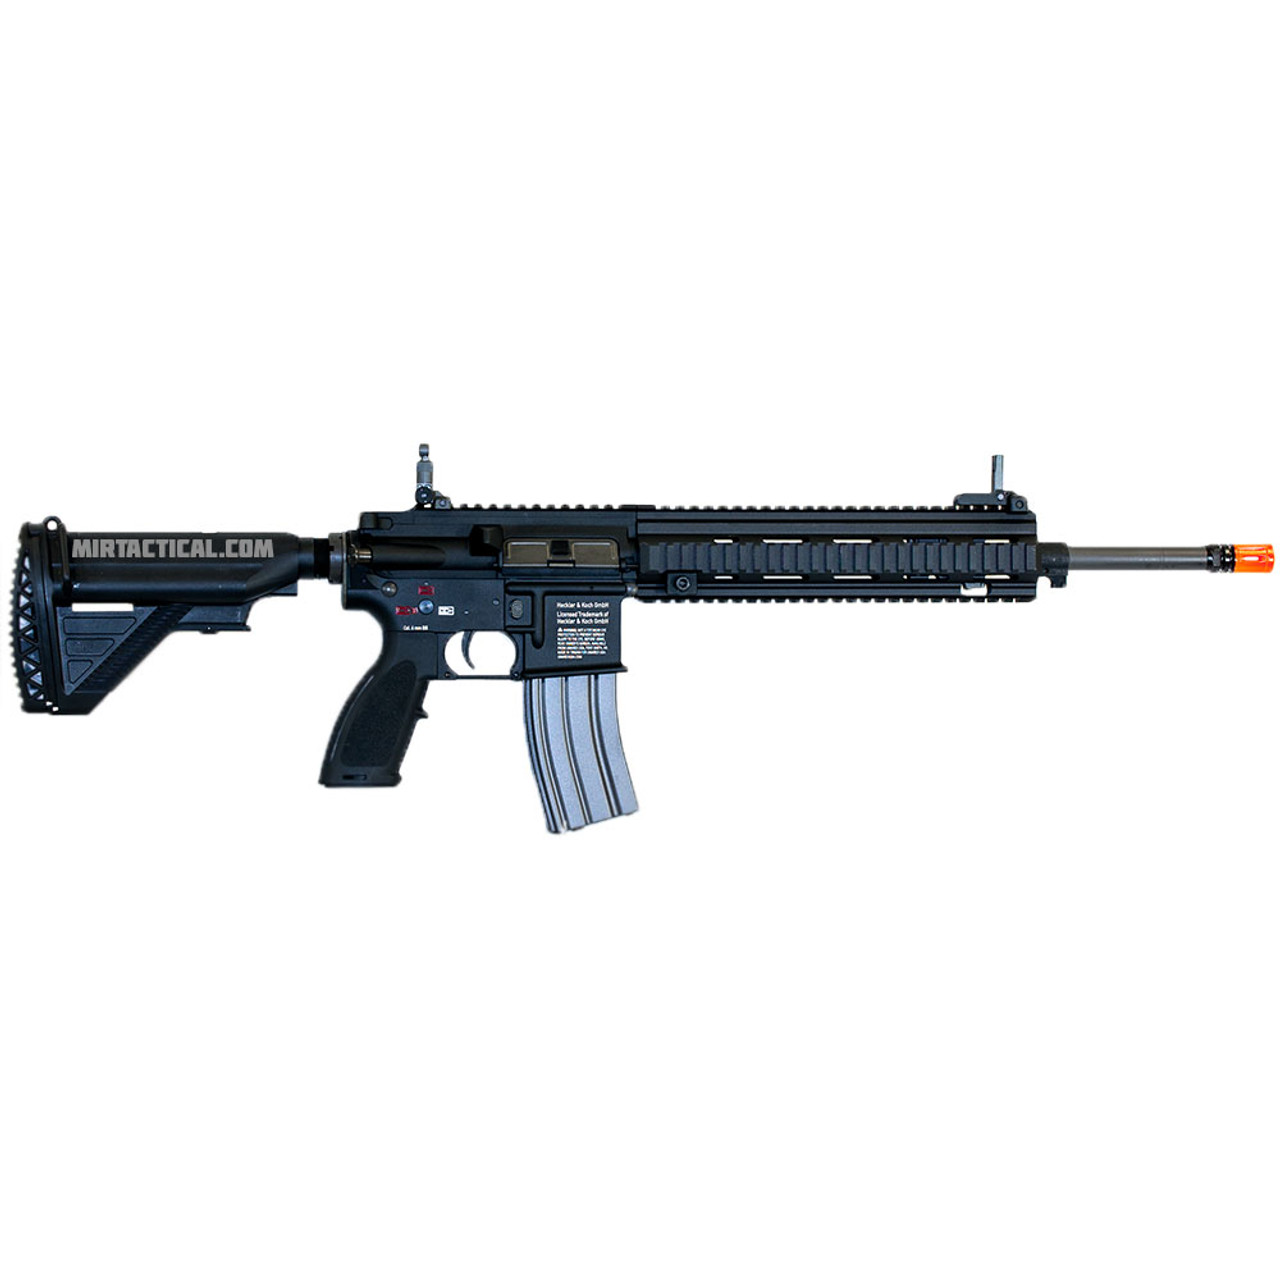 small resolution of hk m27 airsoft wiring diagram wiring schematic data hk airsoft guns hk m27 airsoft wiring diagram